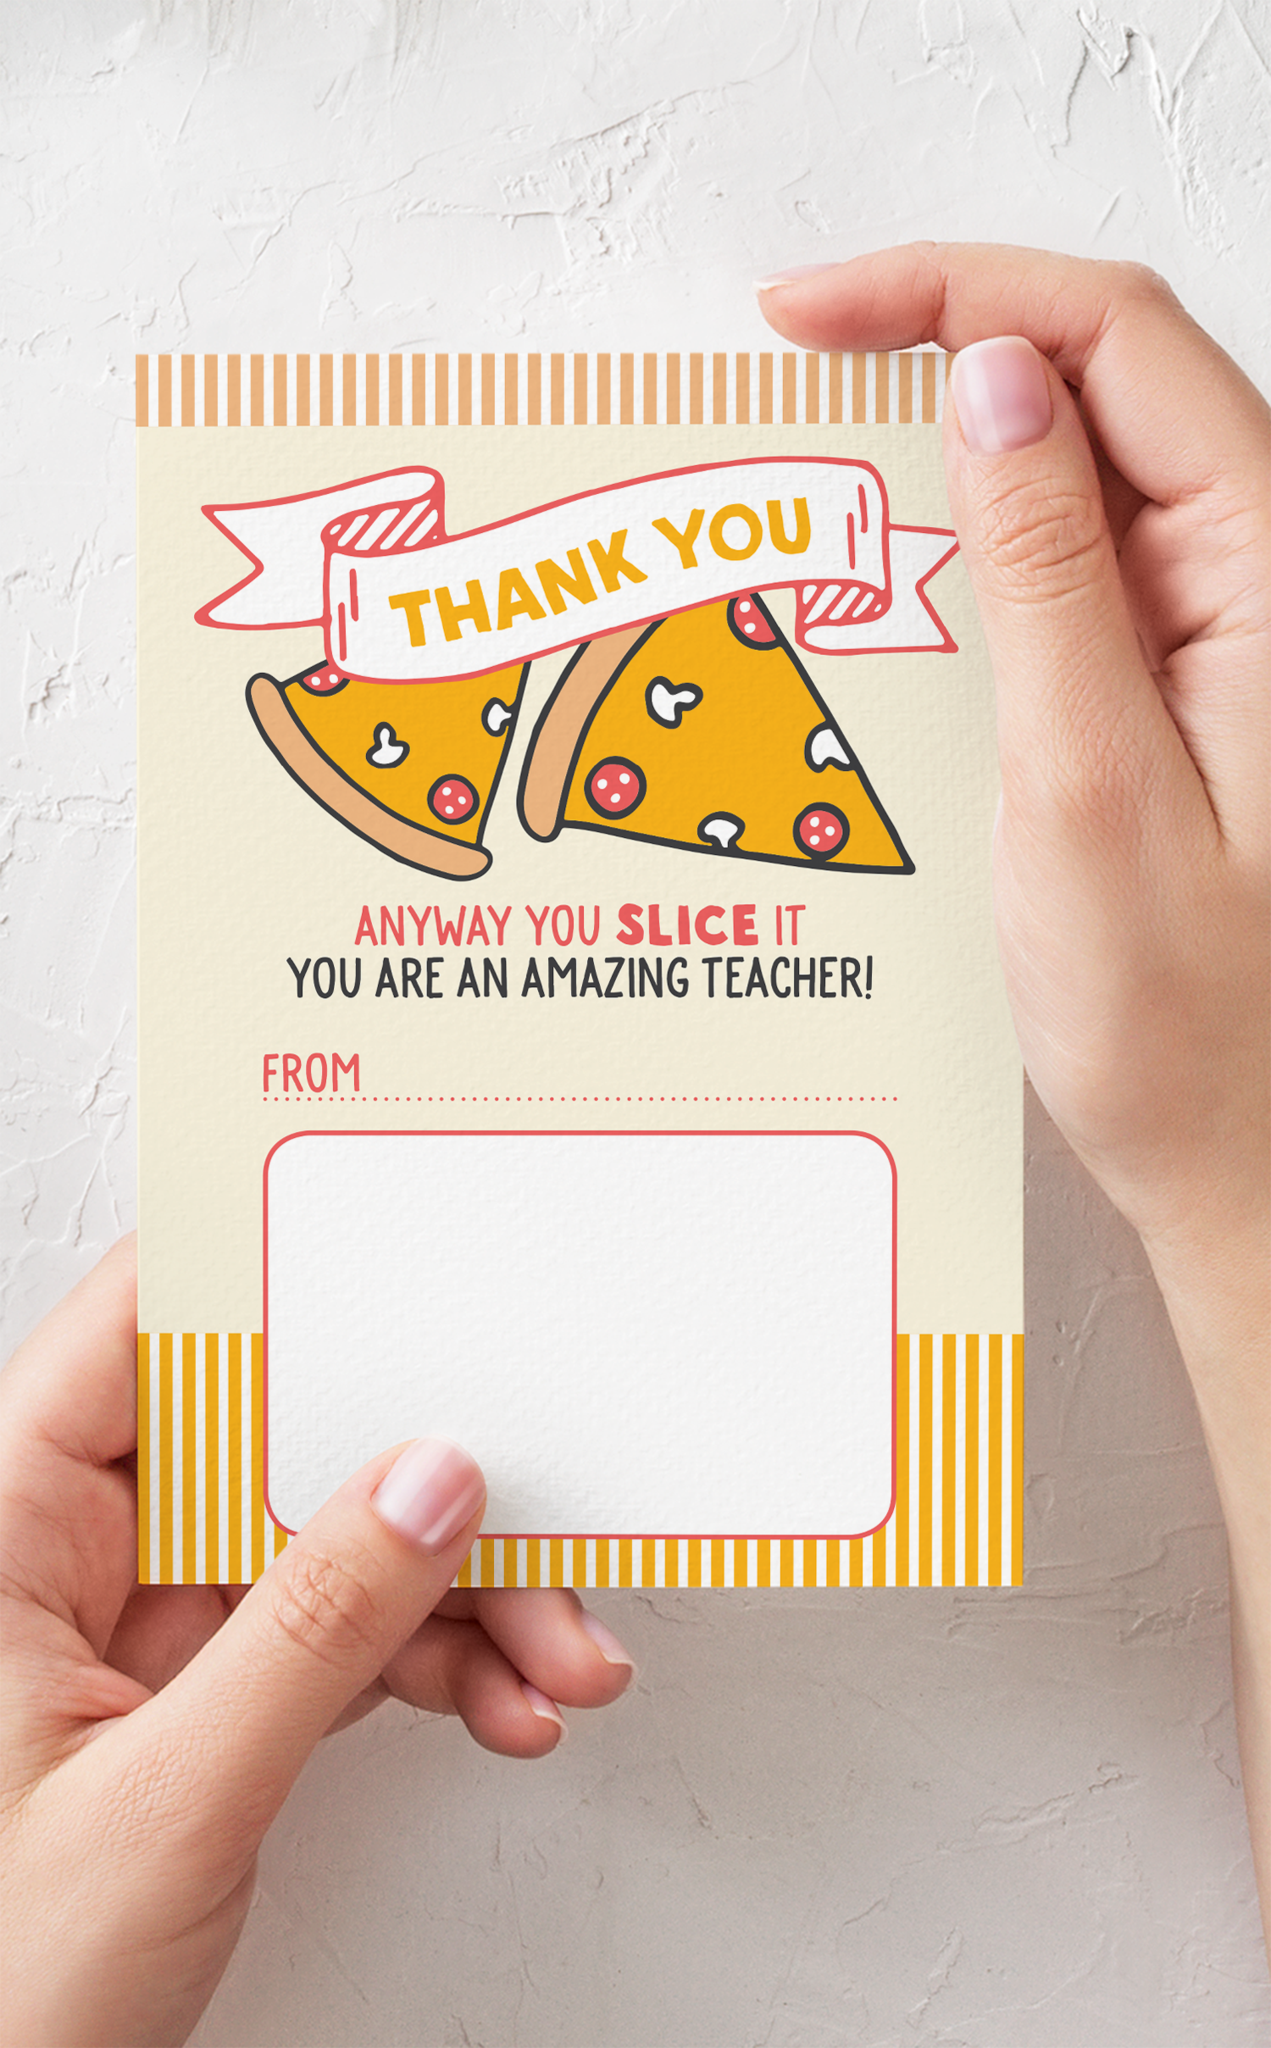 Edit /& Print Within Minutes! Teacher Appreciation Gifts Teacher Gift Card Holder Teacher Appreciation Printable Thank You Card